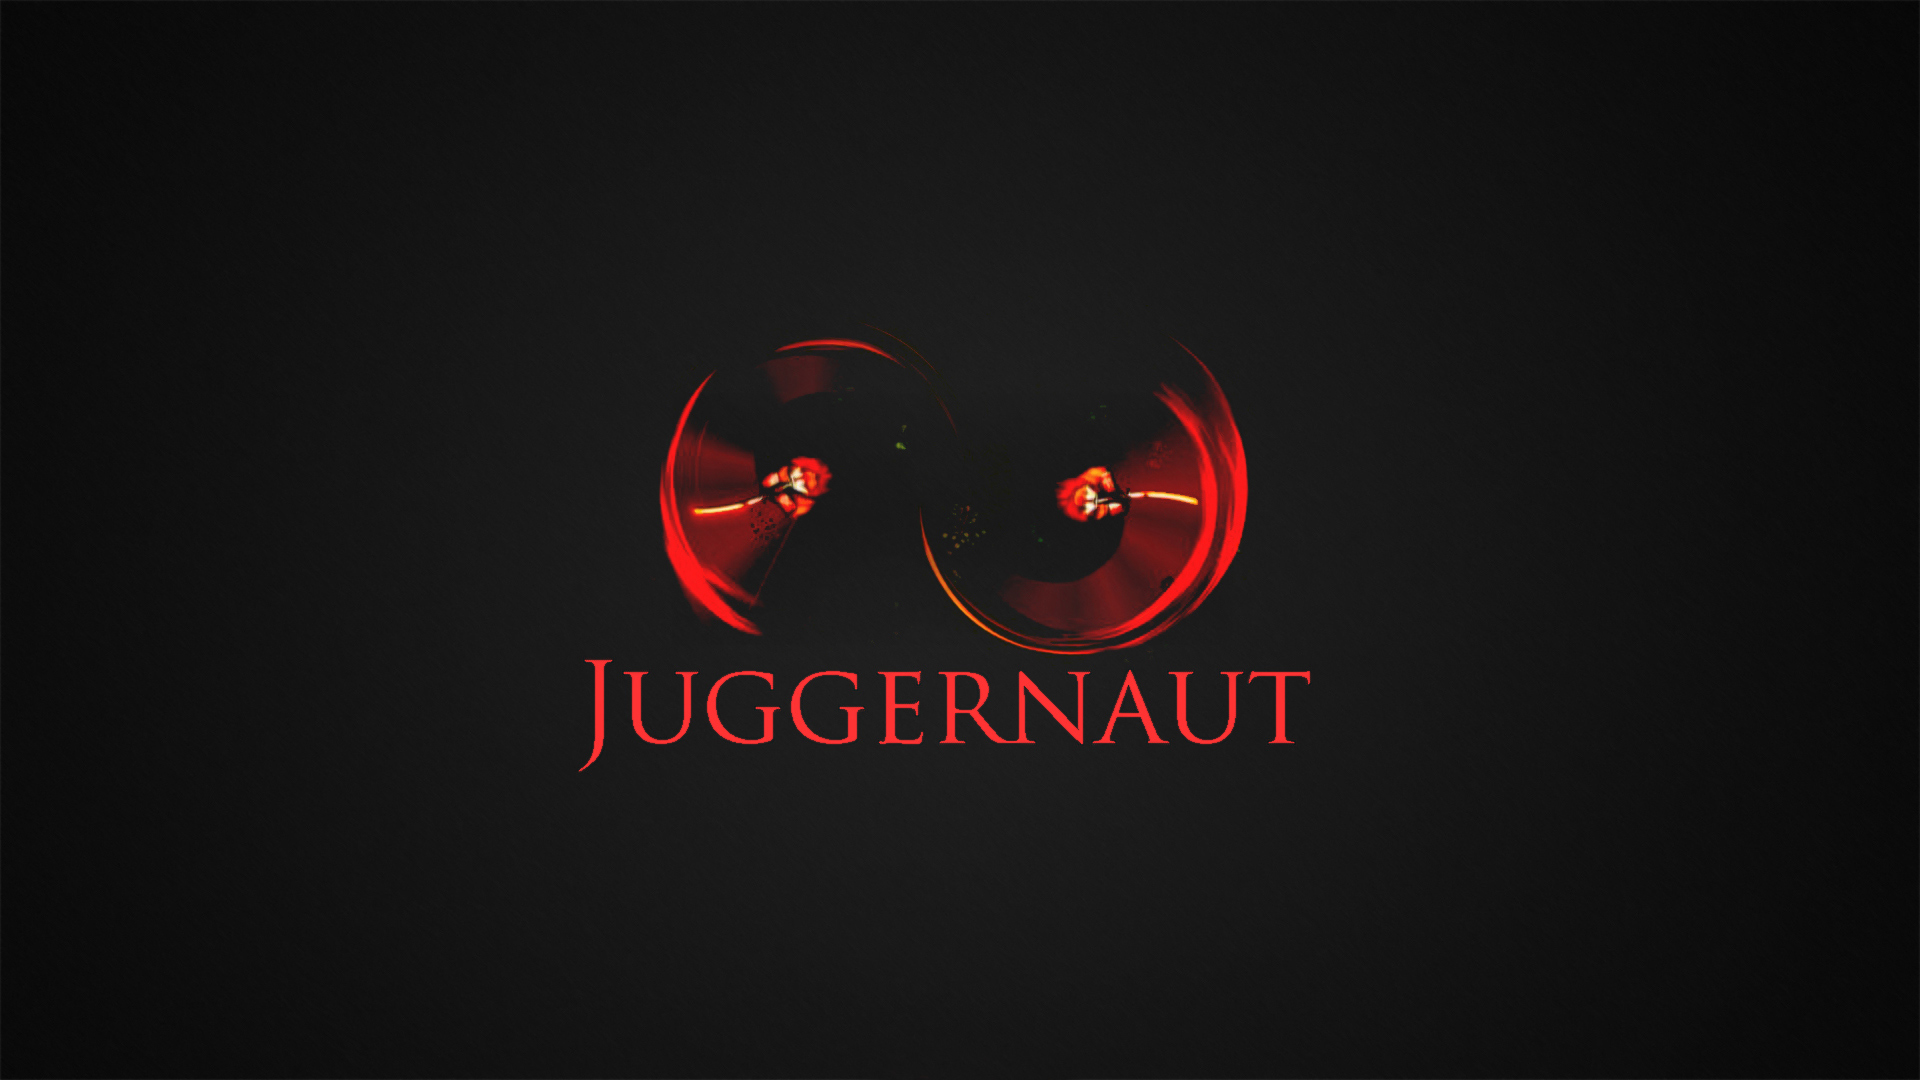 Juggernaut ART wallpapers download